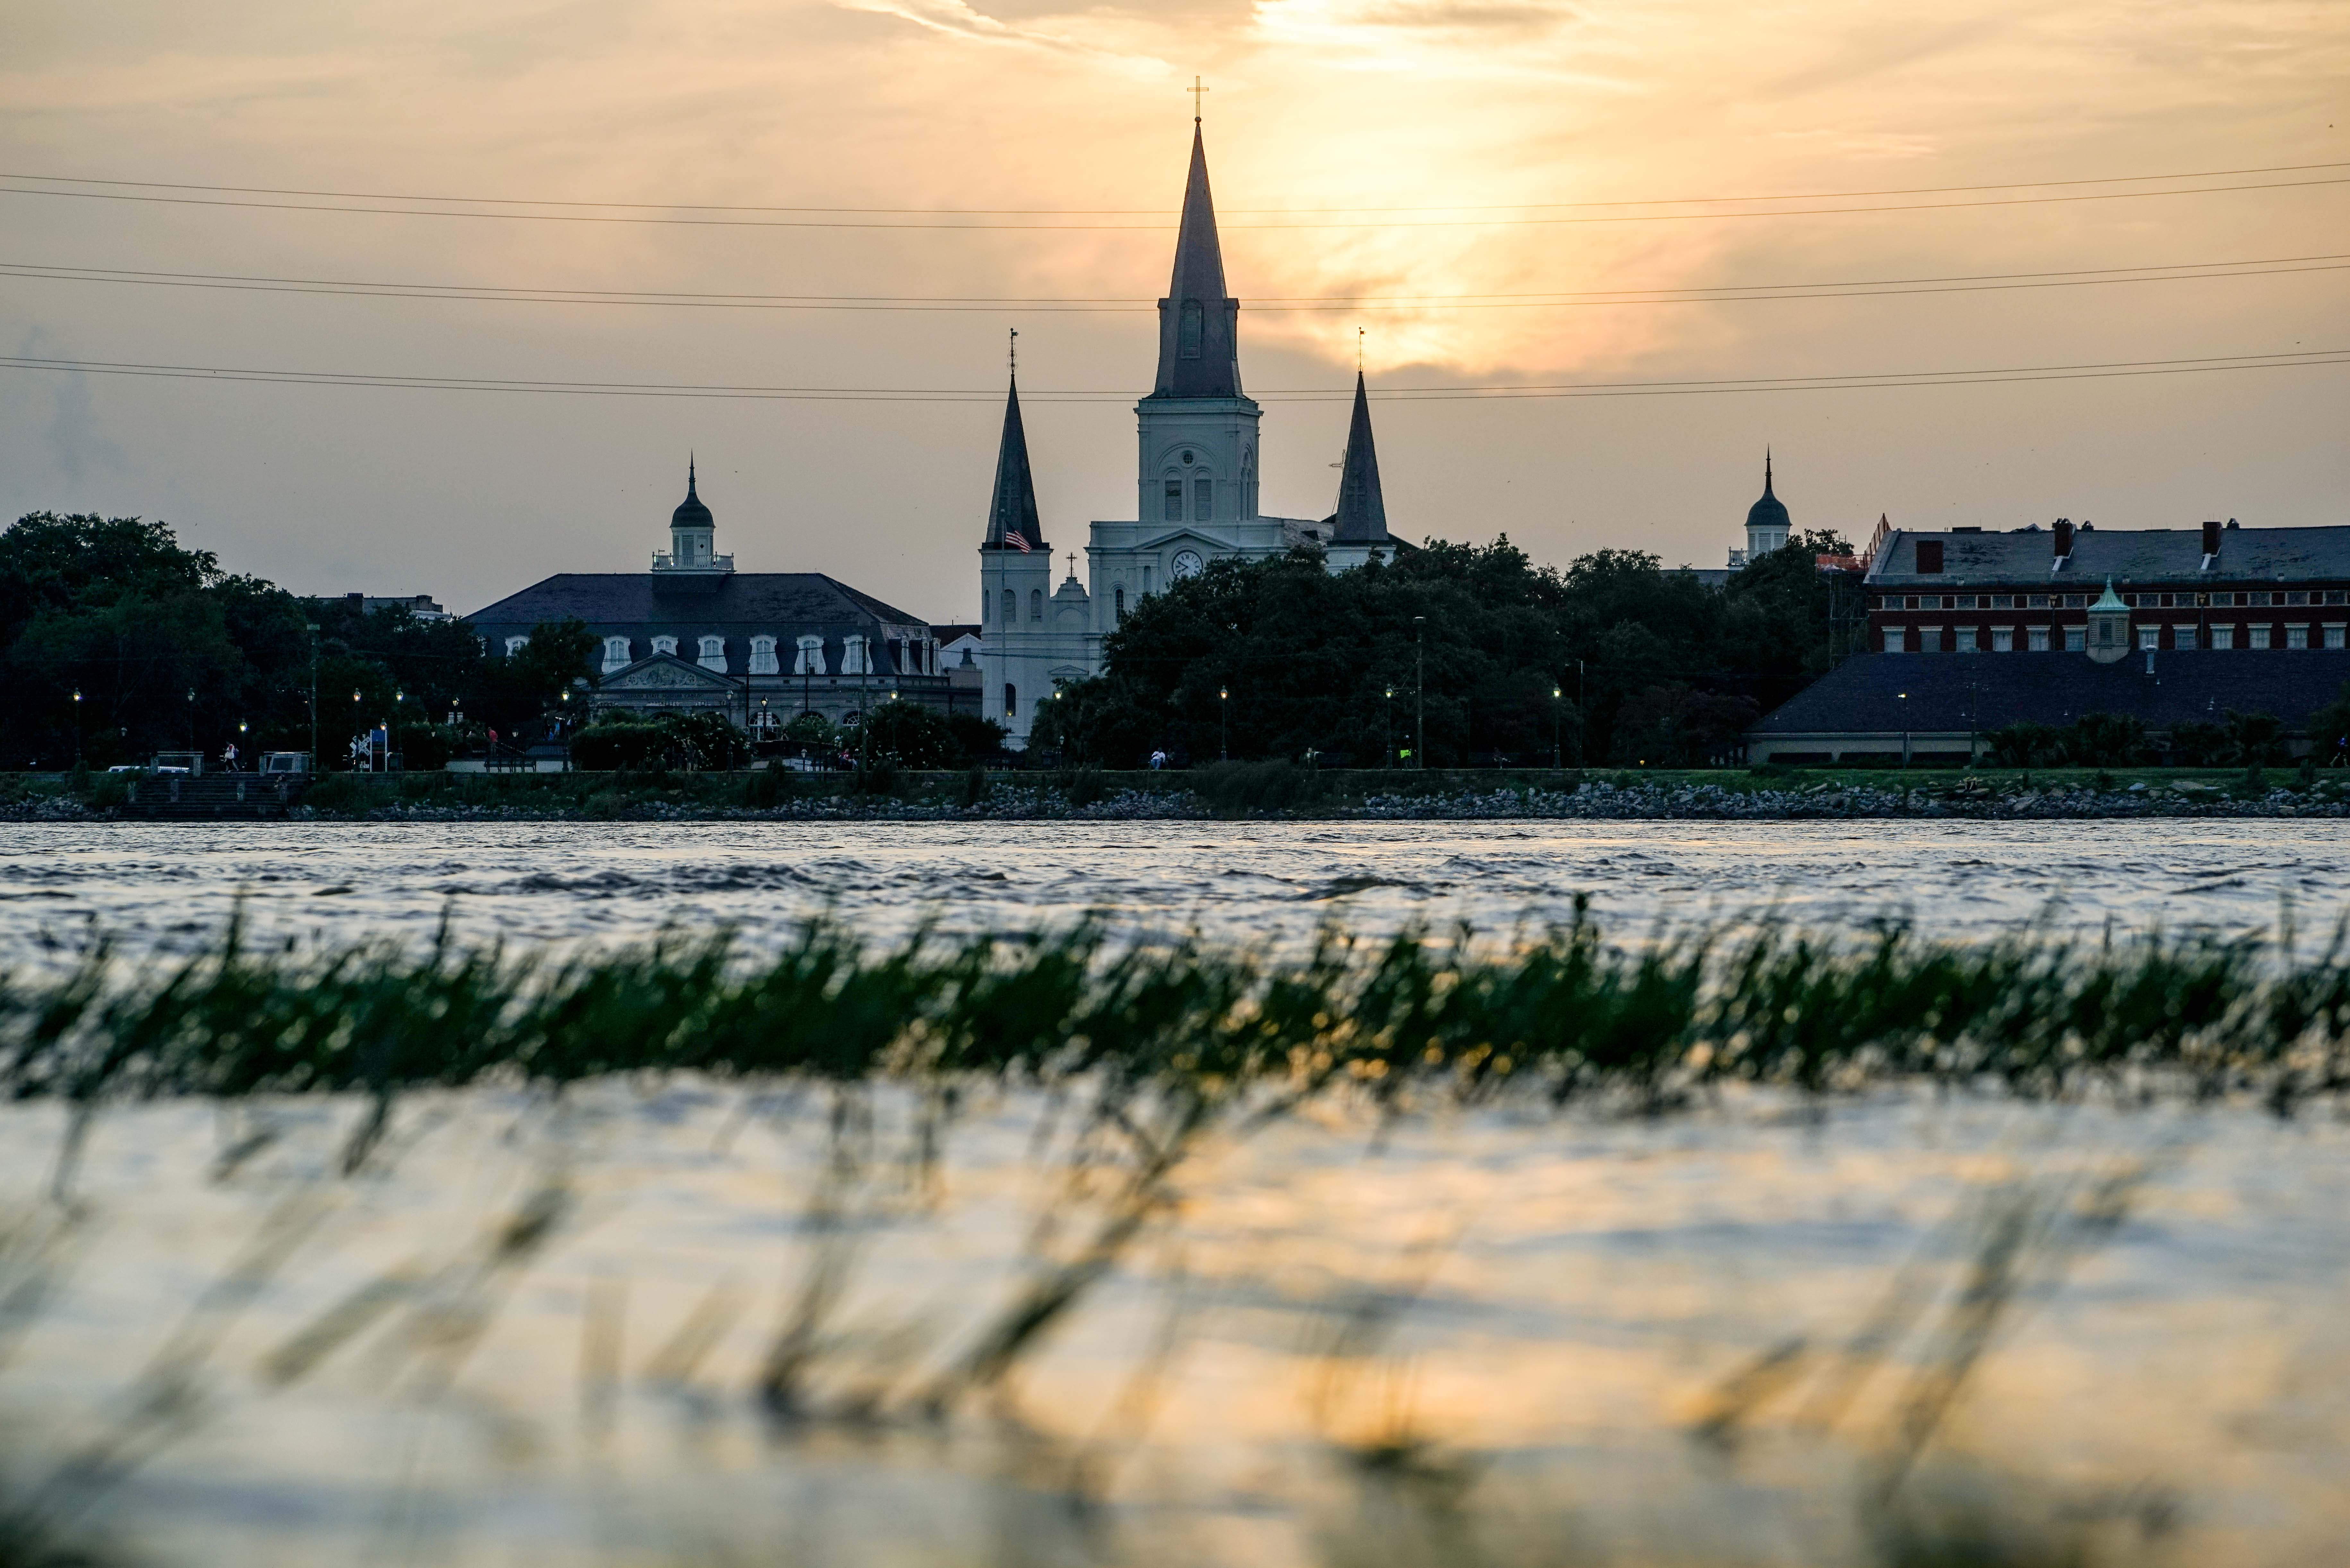 Experience the sunset behind Jackson Square with expansive views of the city from Algiers Point, steps from the ferry landing.